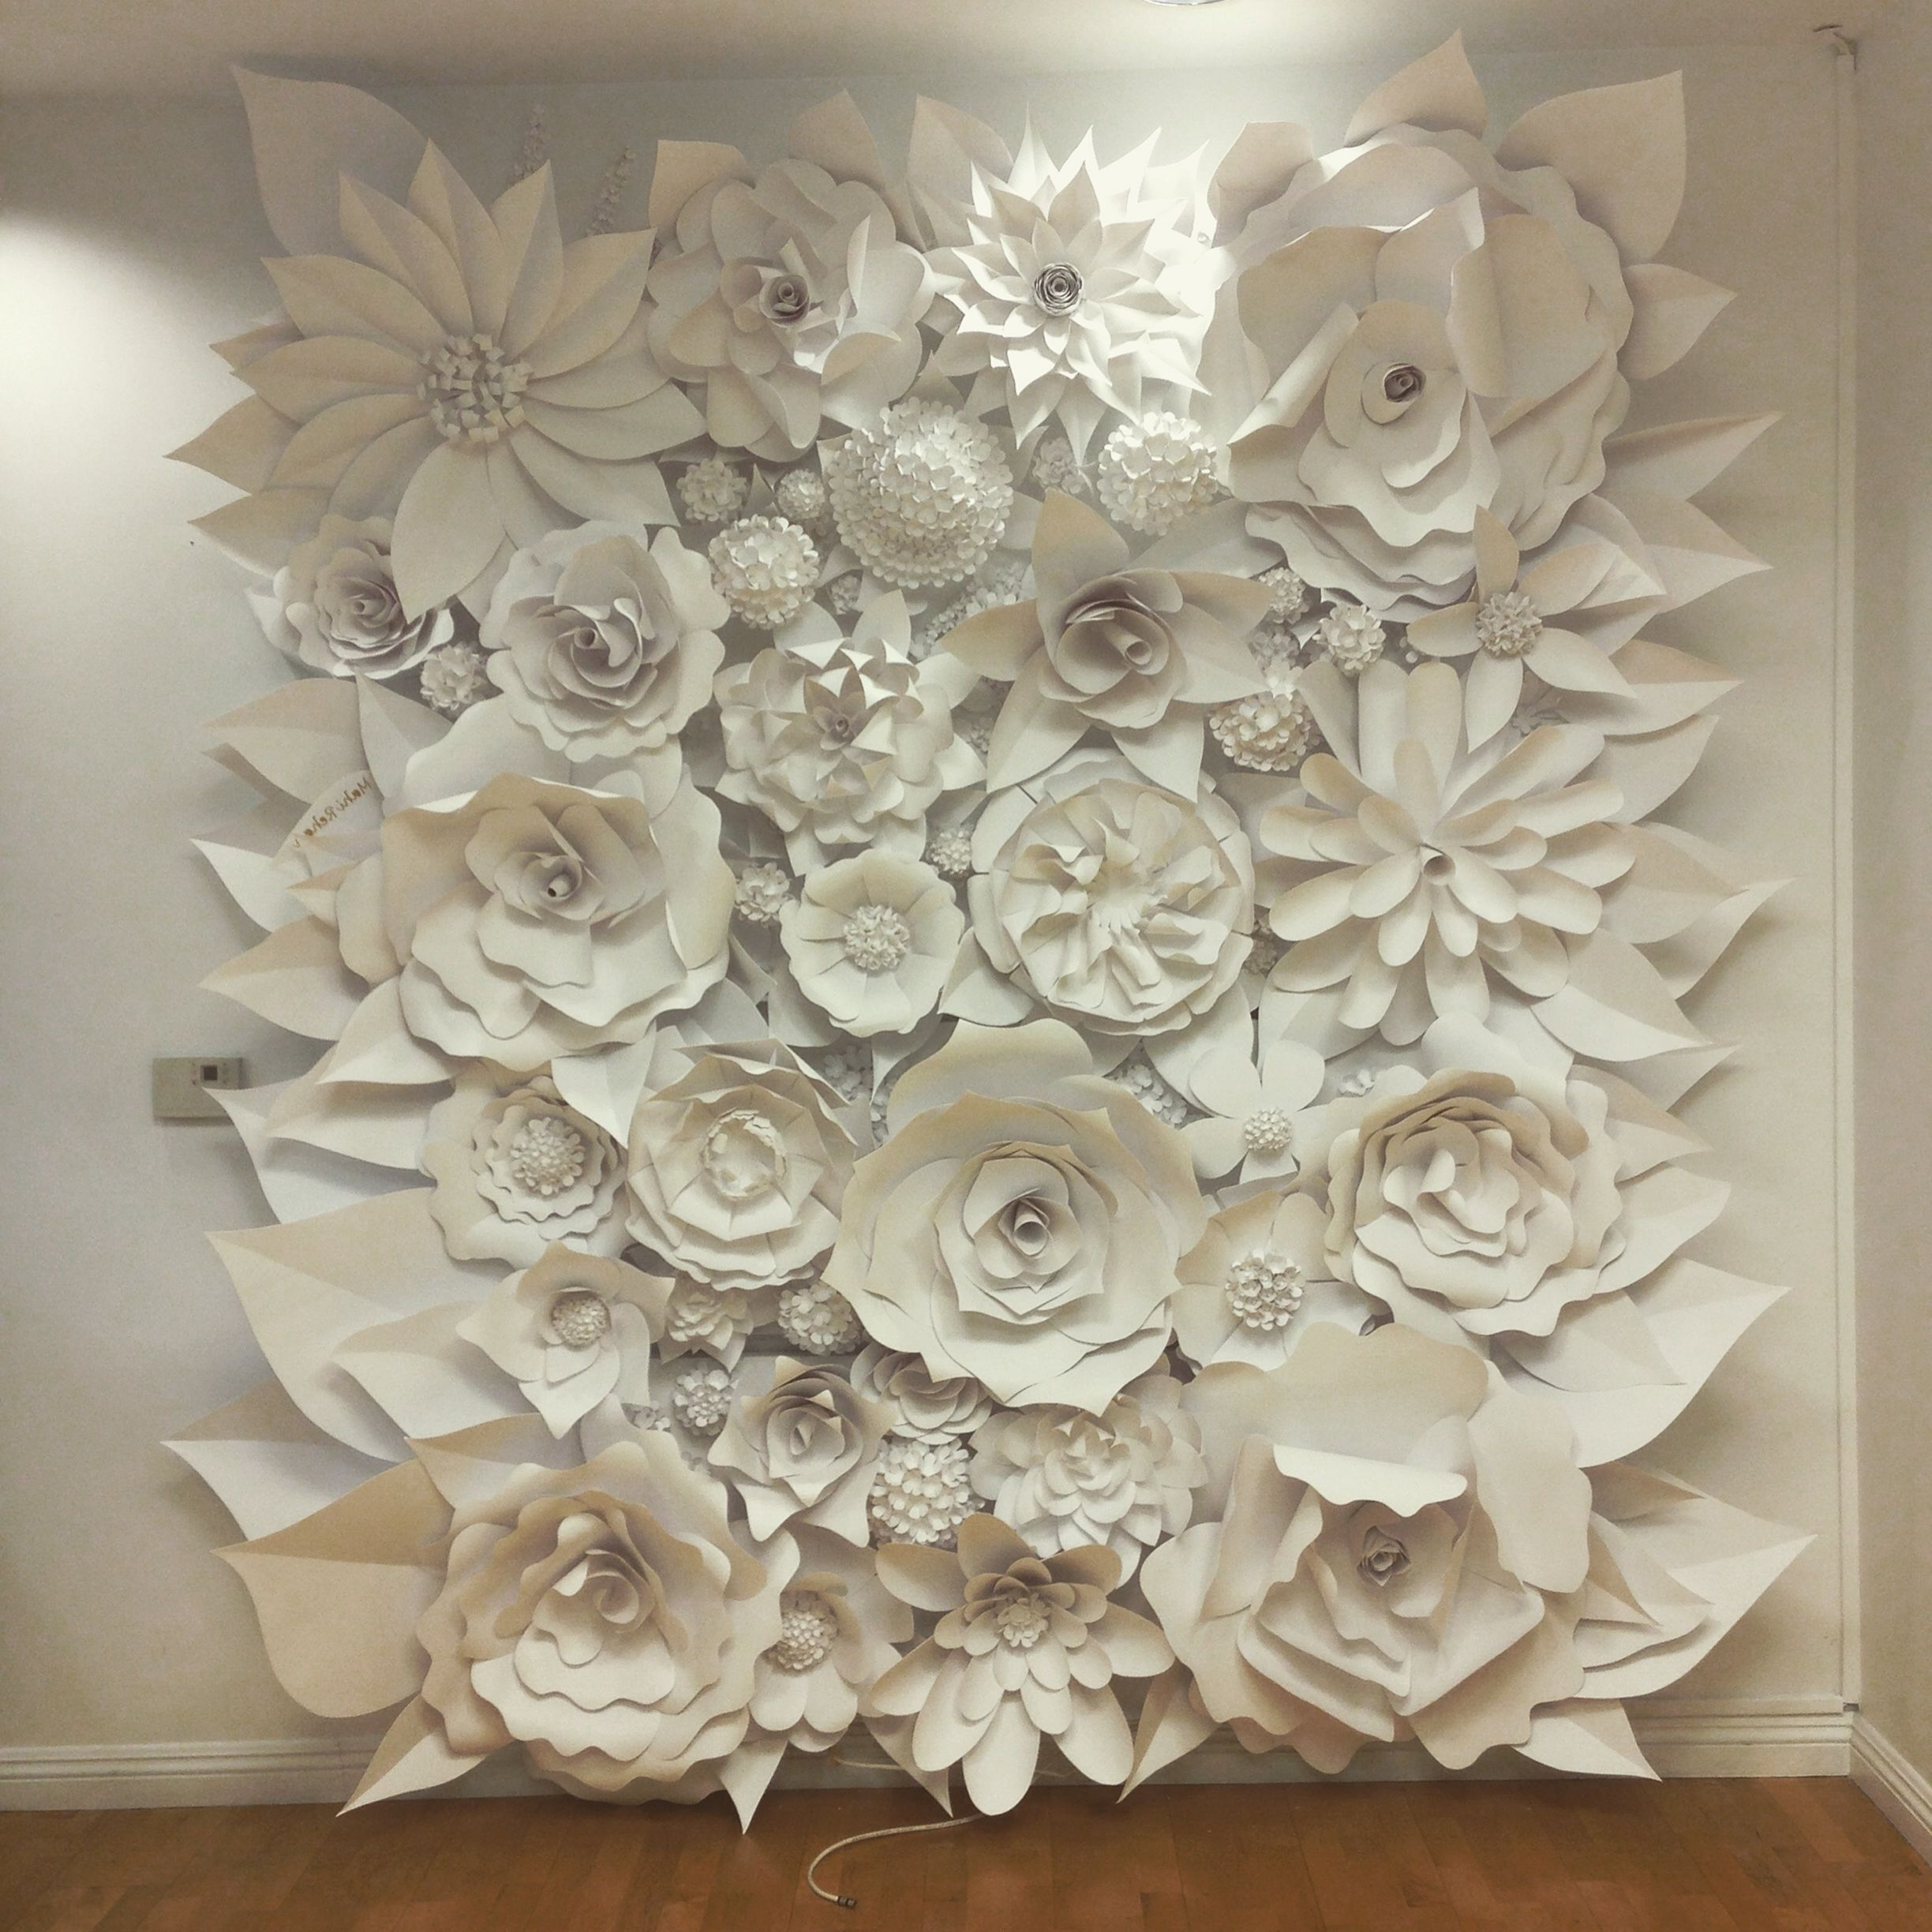 Make Your Living Room Wonderful With 13 Best 3d Floral Flower Wall Decor Flower Wall Decor 3d Flower Wall Decor Flower Wall